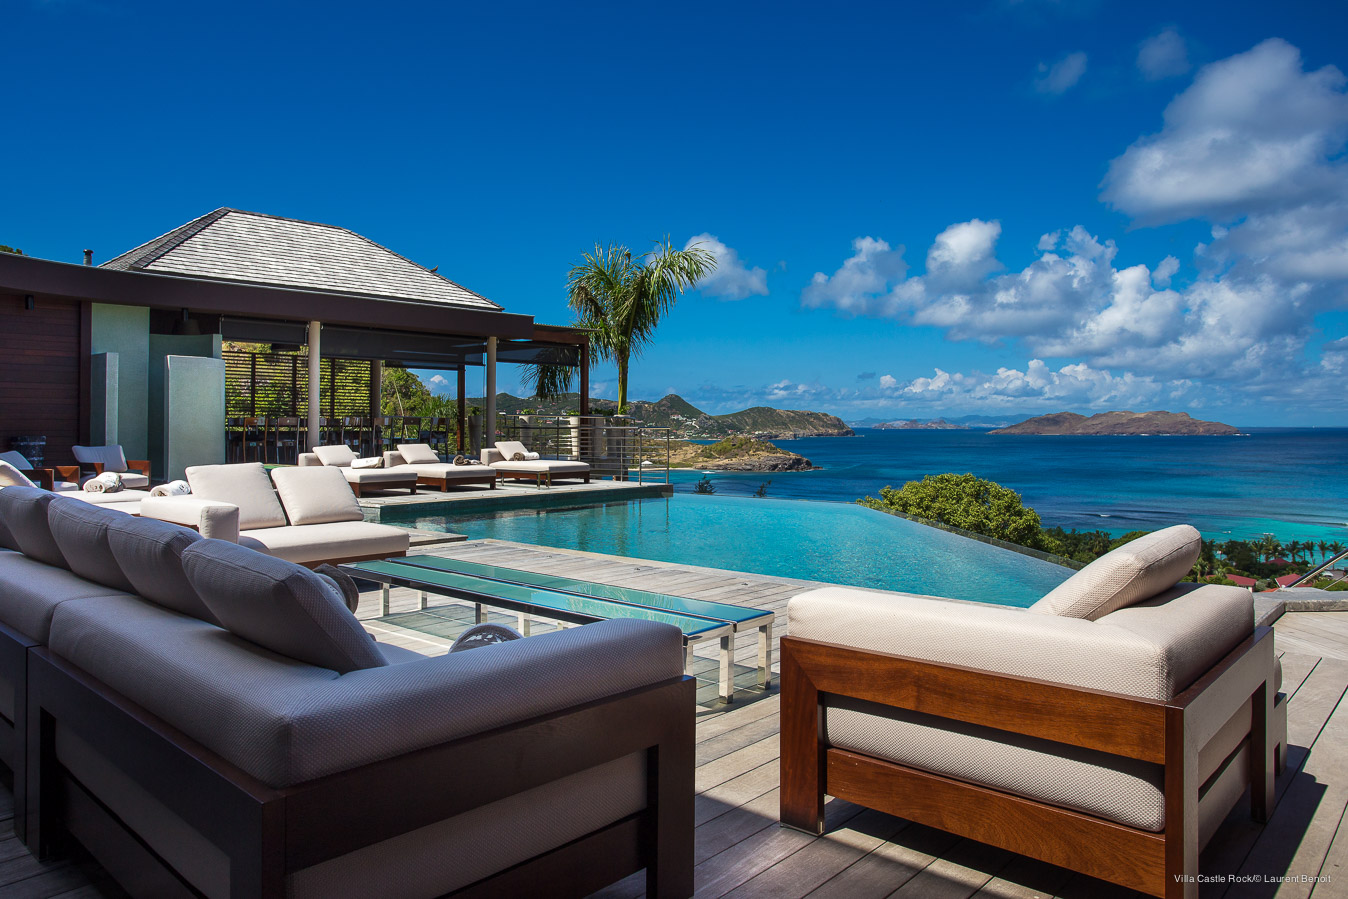 Villa Castle Rock - Magnificent Villa for Rent Situated on the Hillside of Lorient St Barth - Seaview